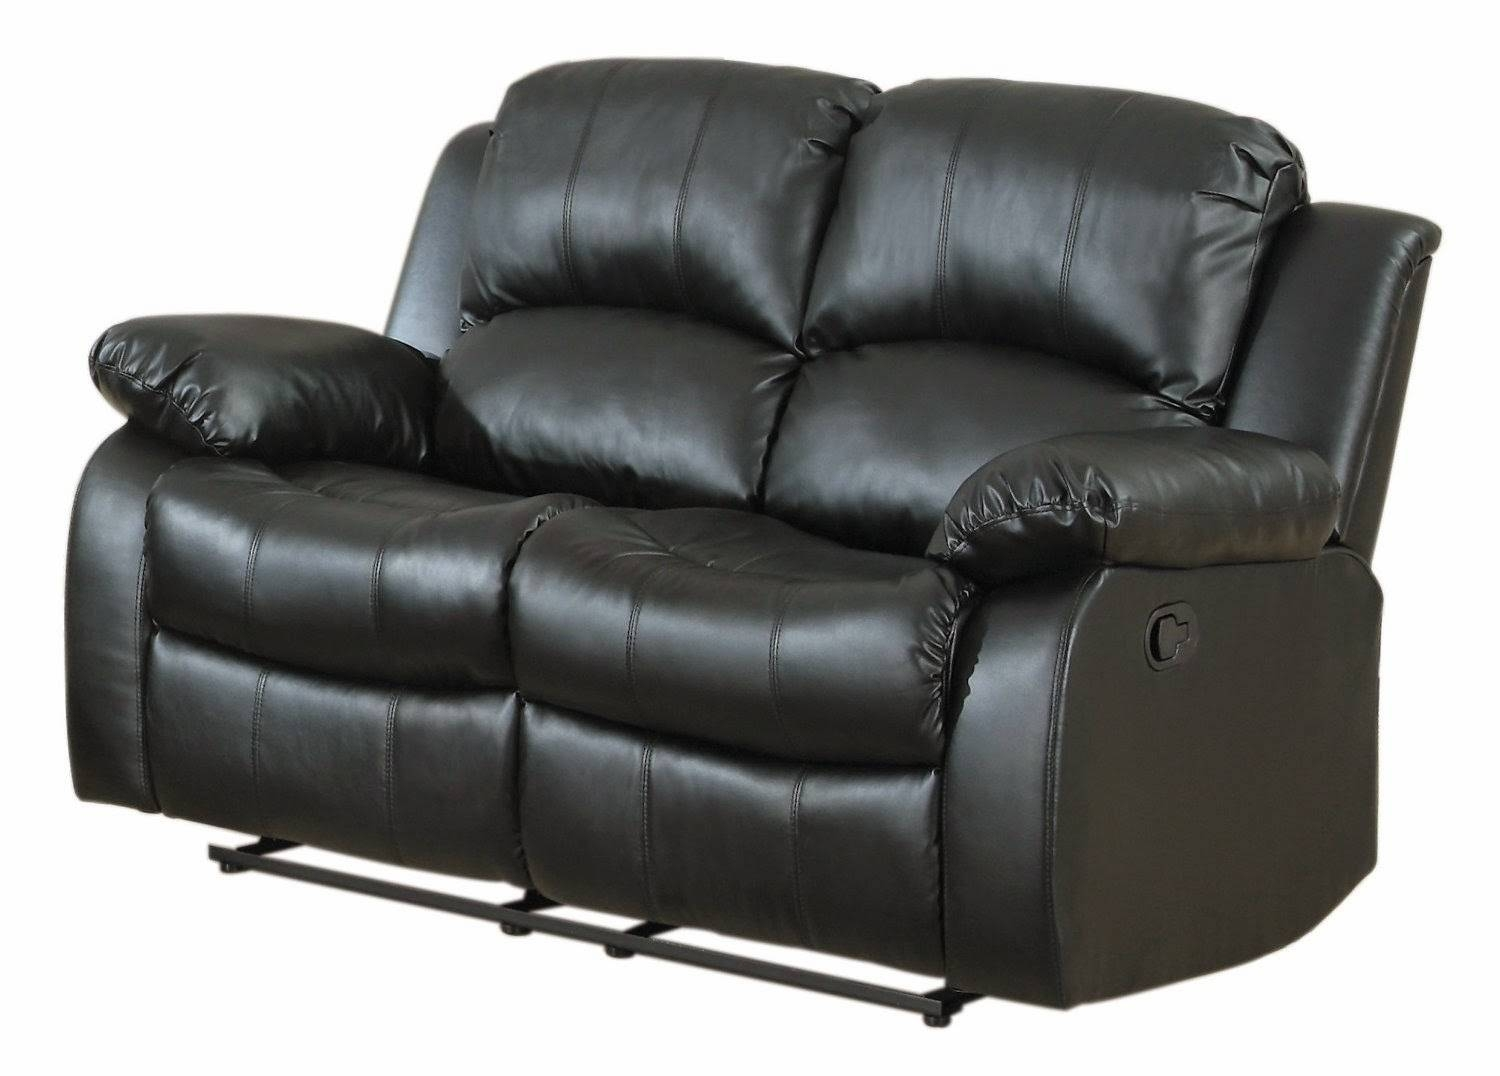 Reclining Sofas For Sale: Berkline Leather Reclining Sofa Costco intended for Berkline Leather Recliner Sofas (Image 12 of 15)